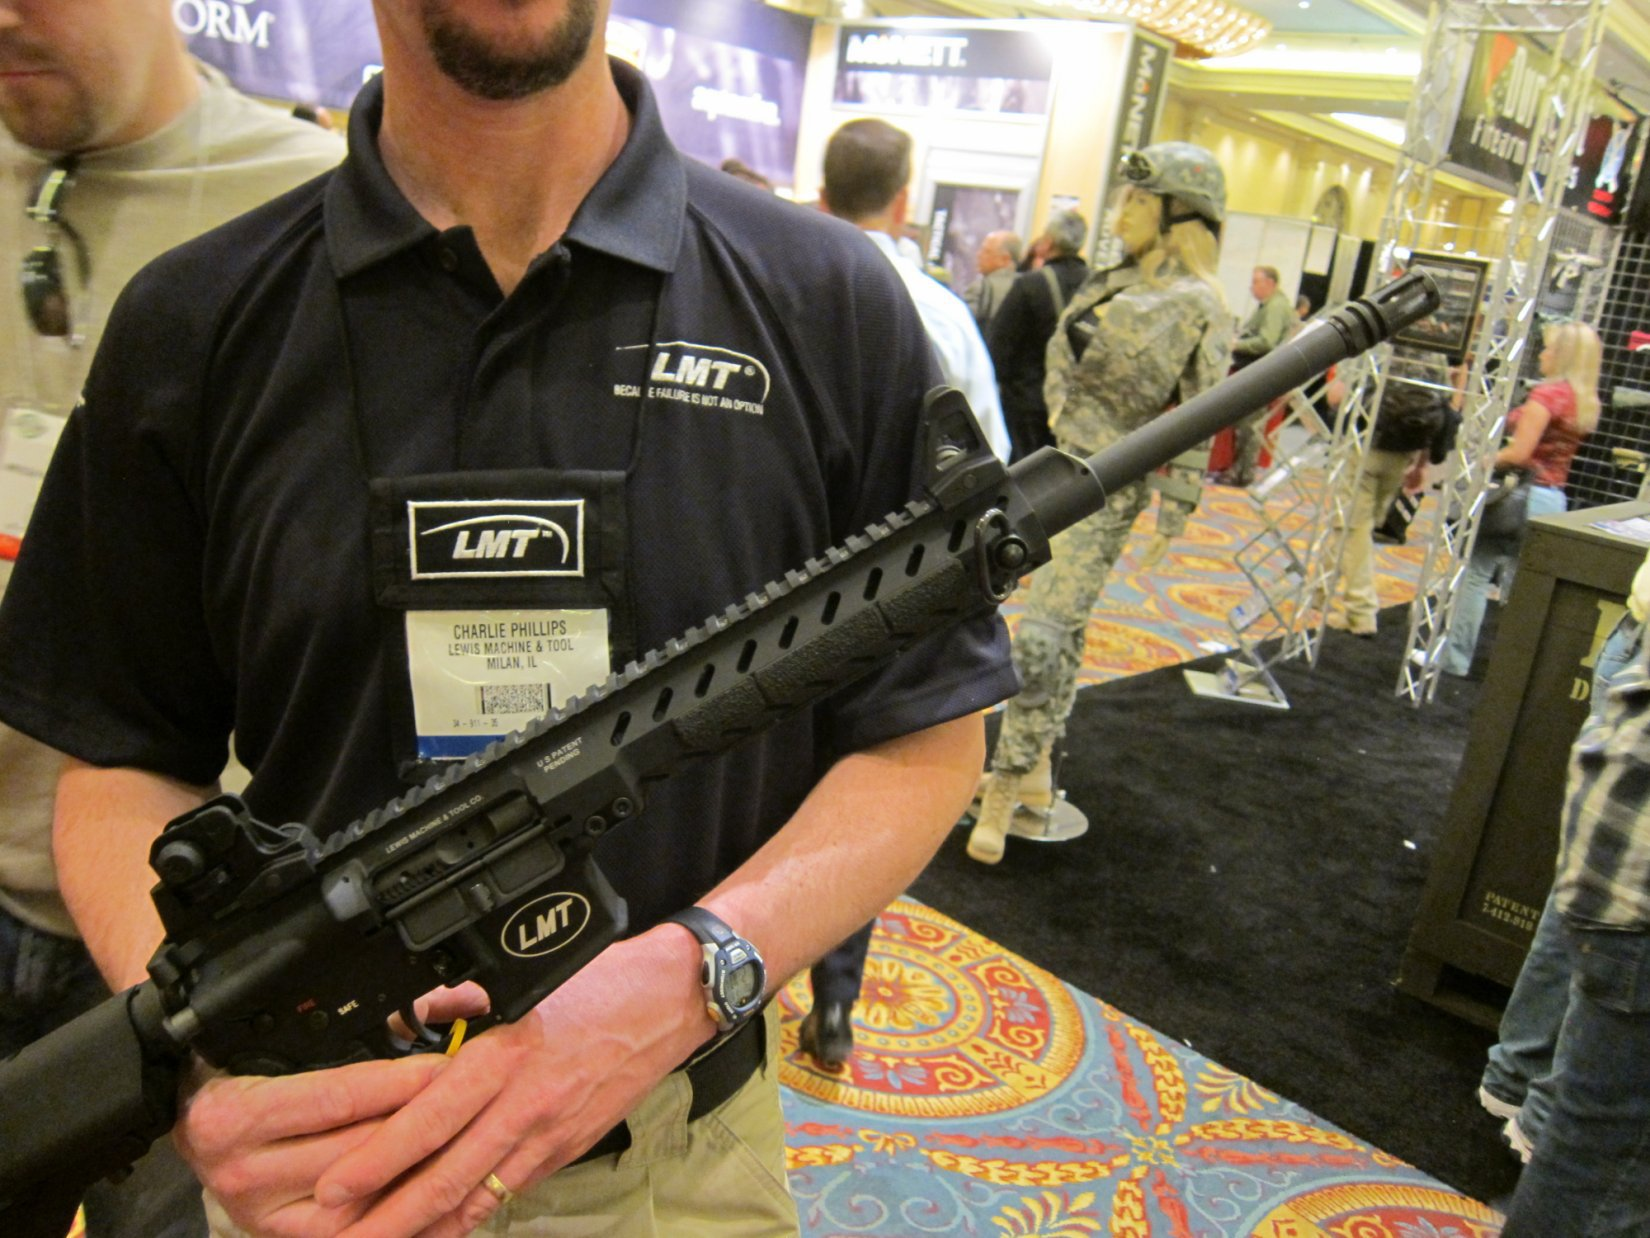 Lewis Machine  Tool LMT LM8MRP Tactical AR 15 5.56x45mm .223 Rem. Upper Receiver SHOT Show 2012 DefenseReview.com DR 1 Lewis Machine & Tool LMT LM8MRP (also written LM8 MRP) 16 Monolithic Rail Platform 5.56mm NATO/.223 Rem. Tactical AR 15 Carbine Upper Receiver(s) with Lightweight Modular Monolithic Rail System